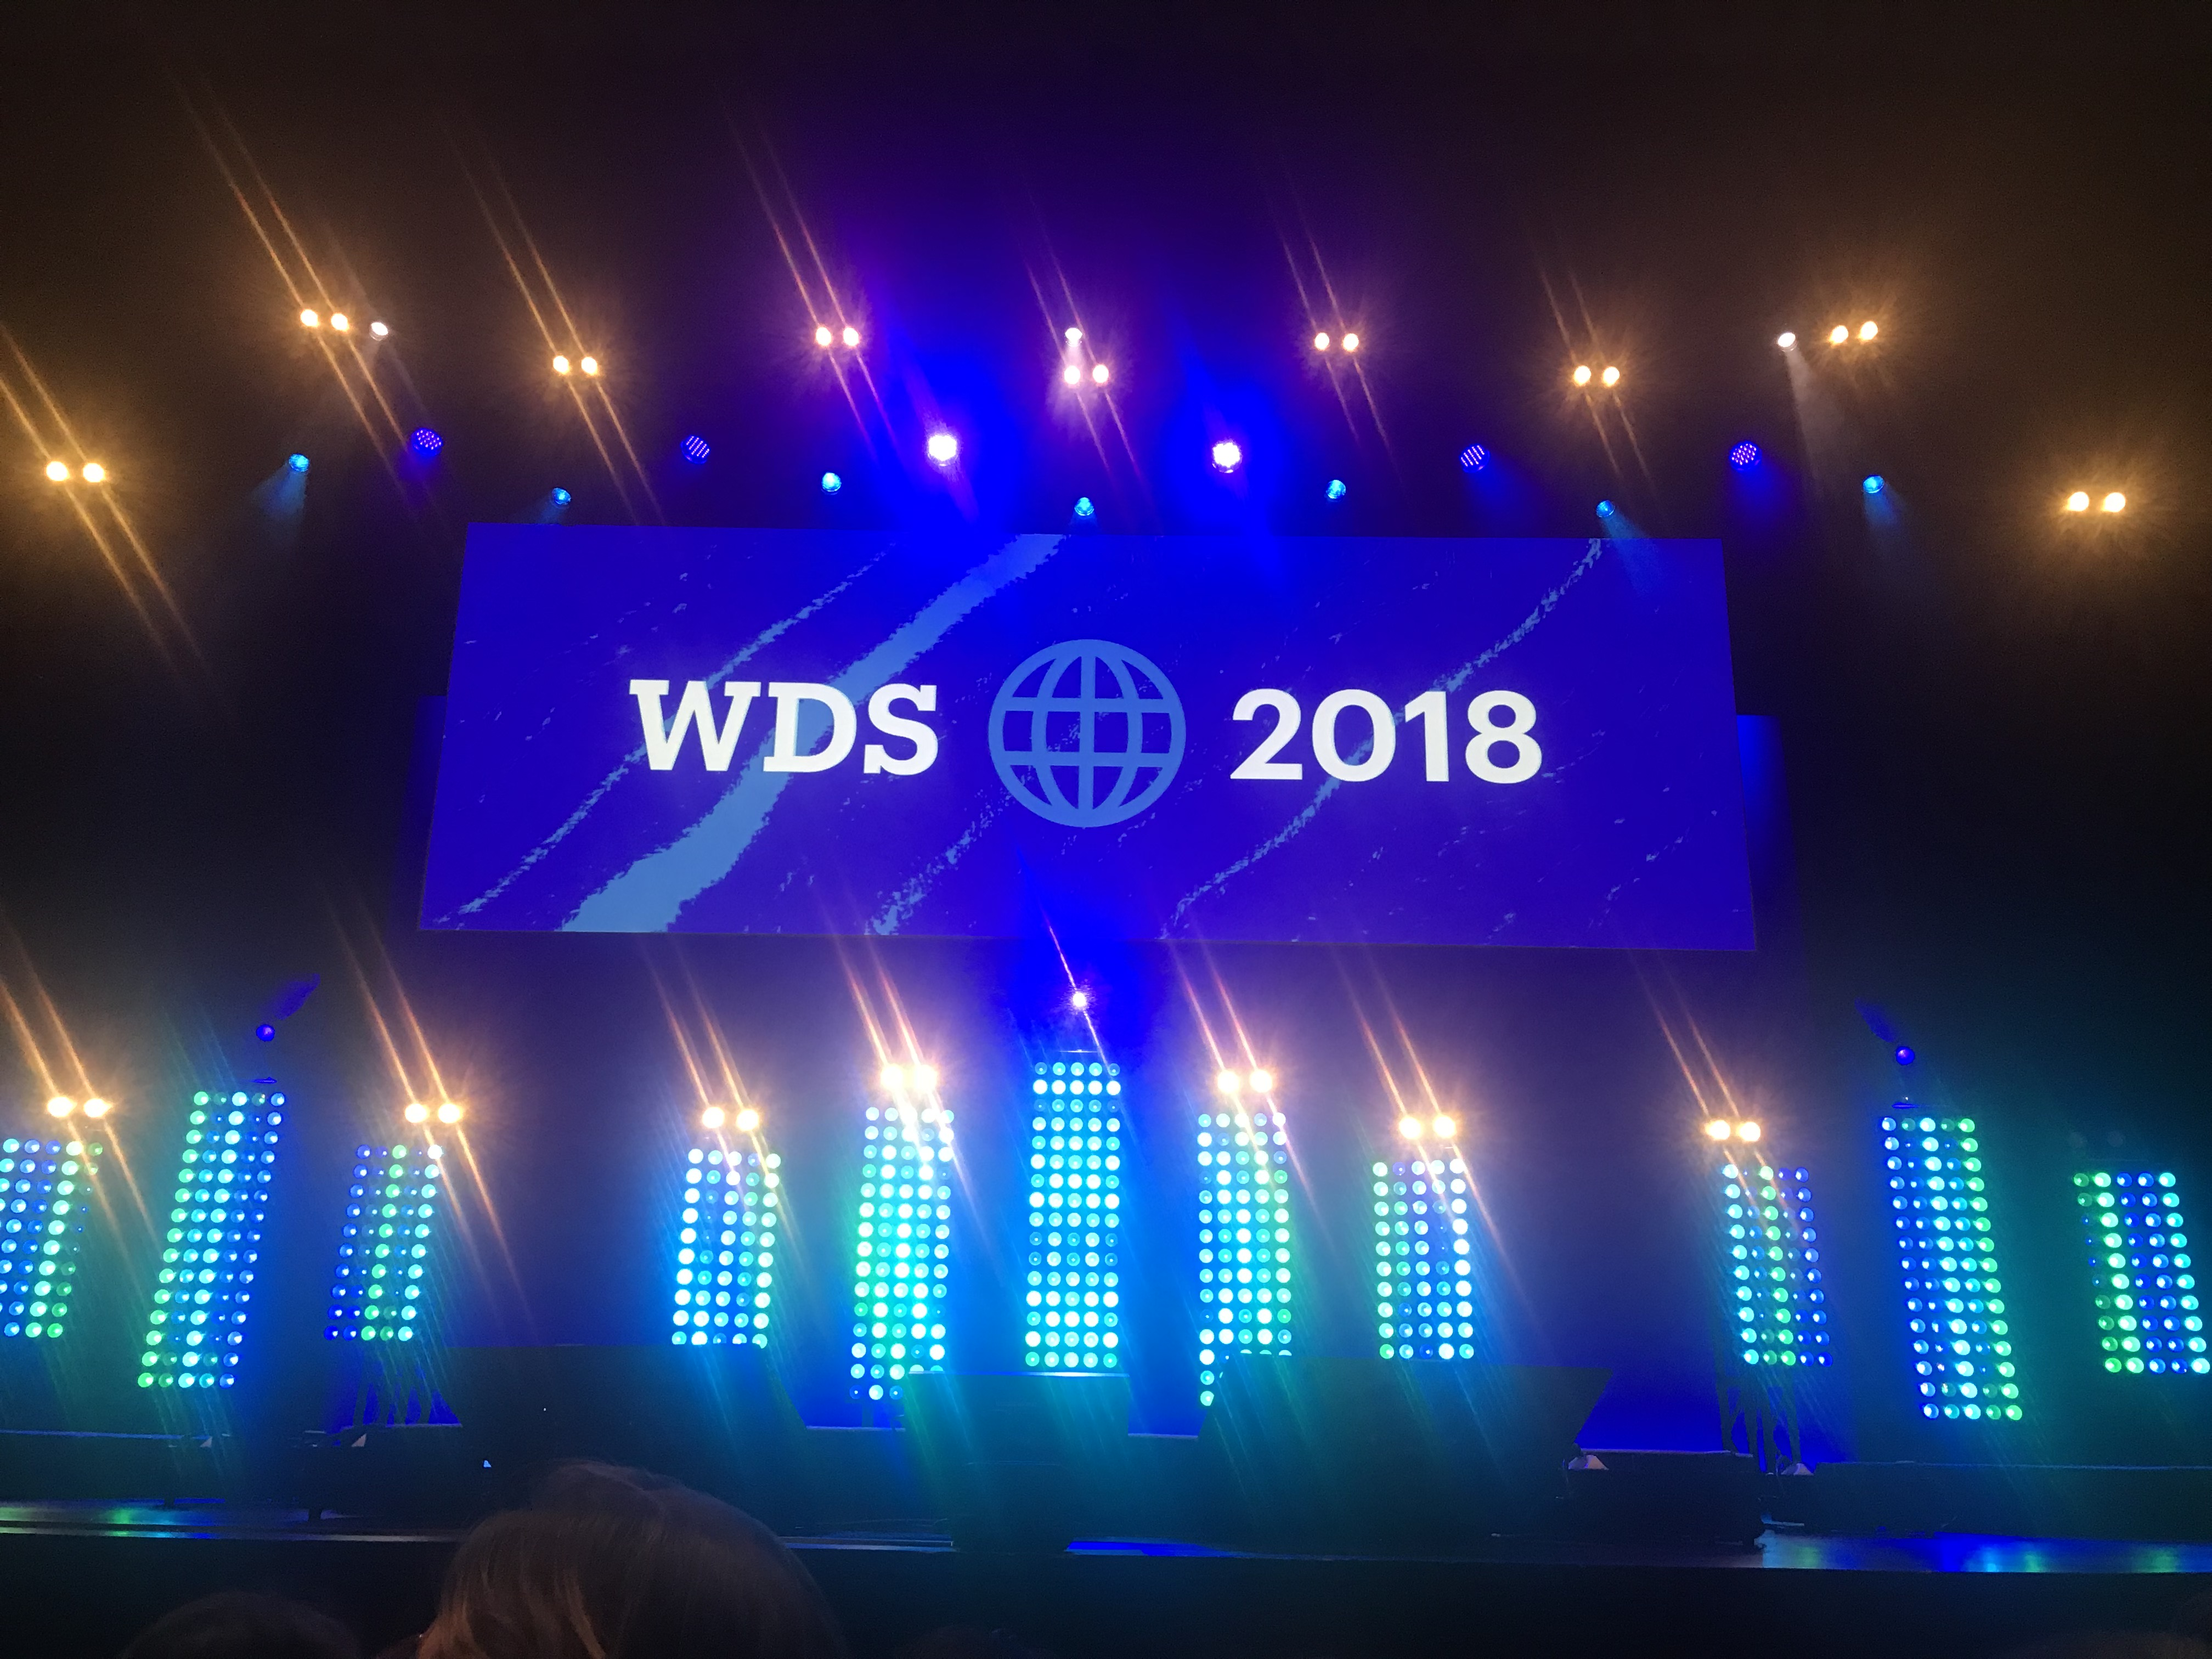 The first conference I attended was a personal growth/renewal conference  called World Domination Summit. It is run by entrepreneurship guru Chris  Guillebeau ...